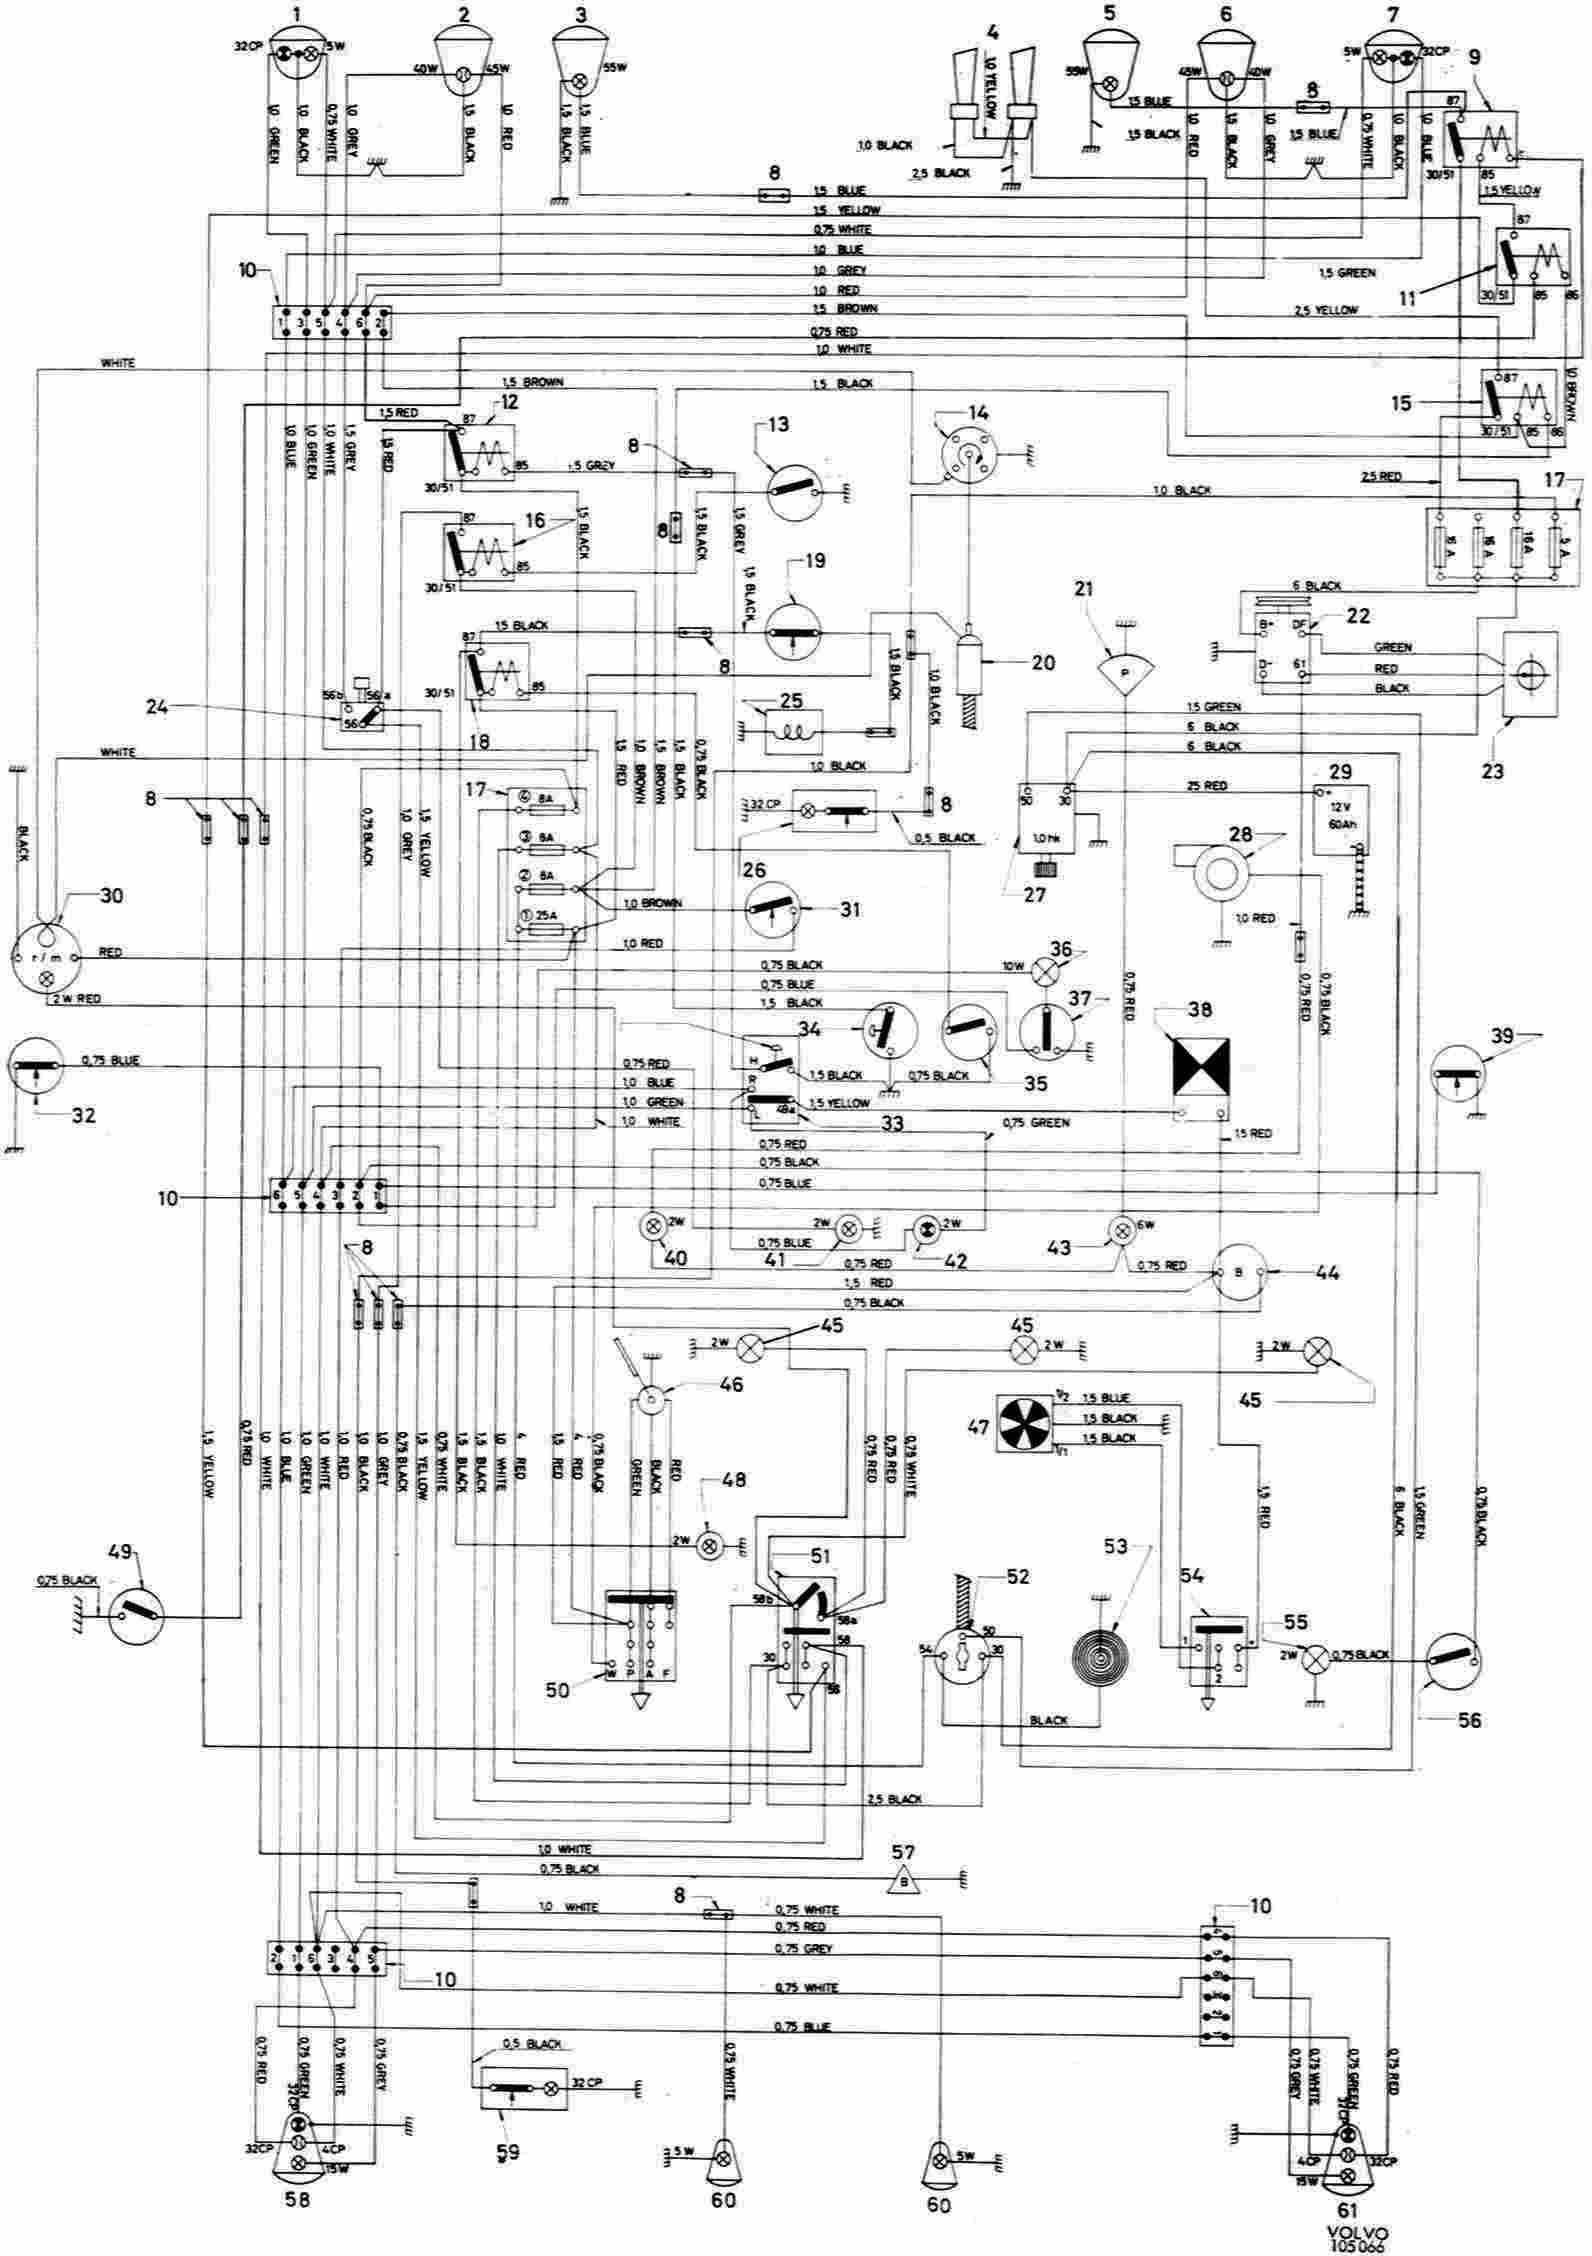 2006 volvo s40 engine diagram library wiring diagram